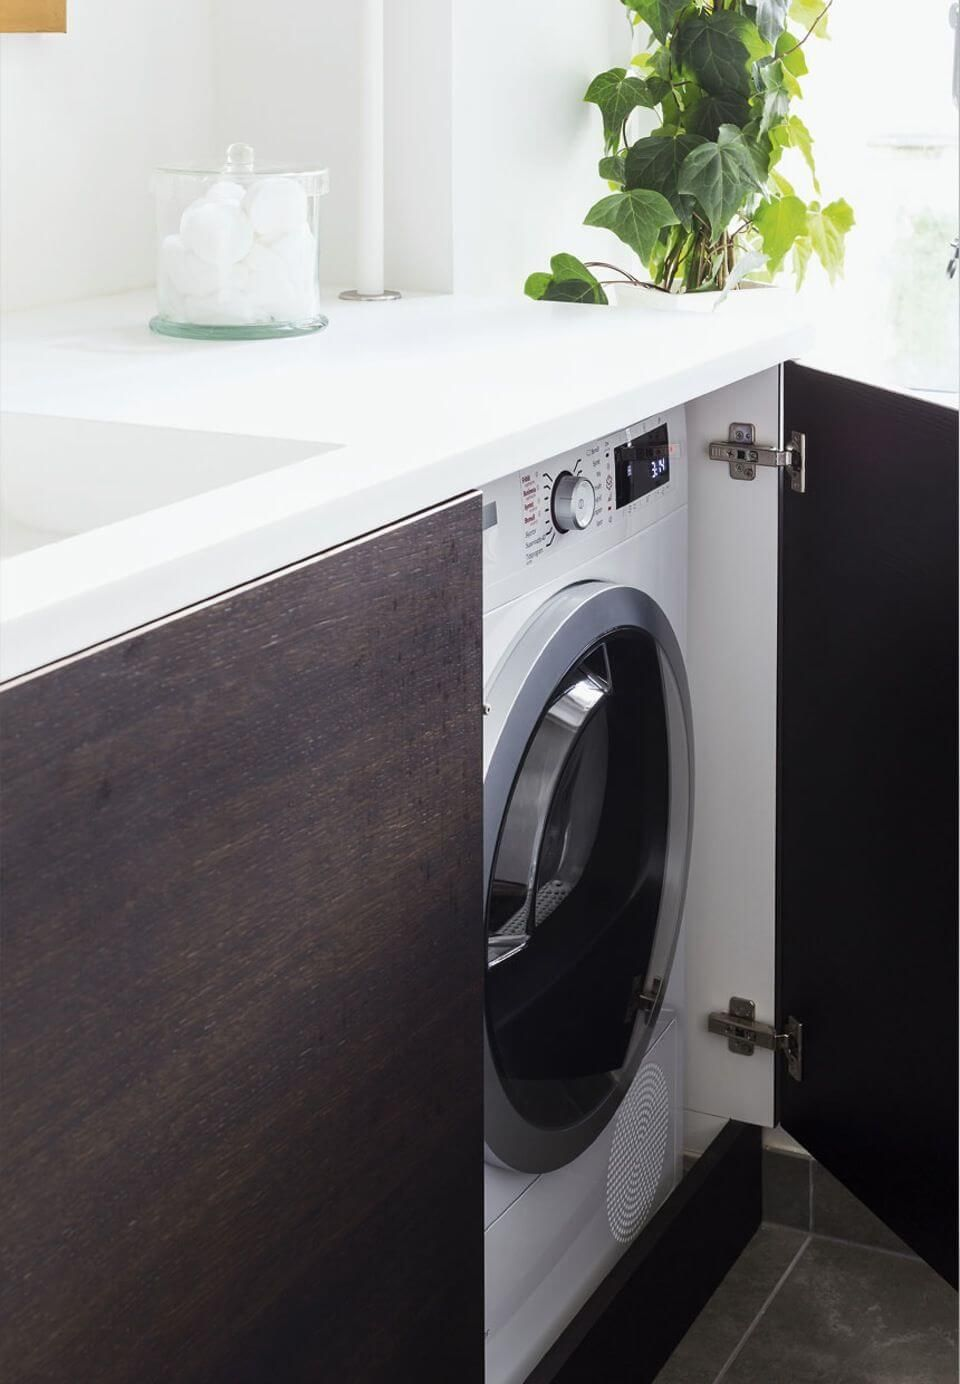 33 Clever Hideaway Projects for Small Homes | Badezimmer ... on Small Space Small Bathroom Ideas With Washing Machine id=26562